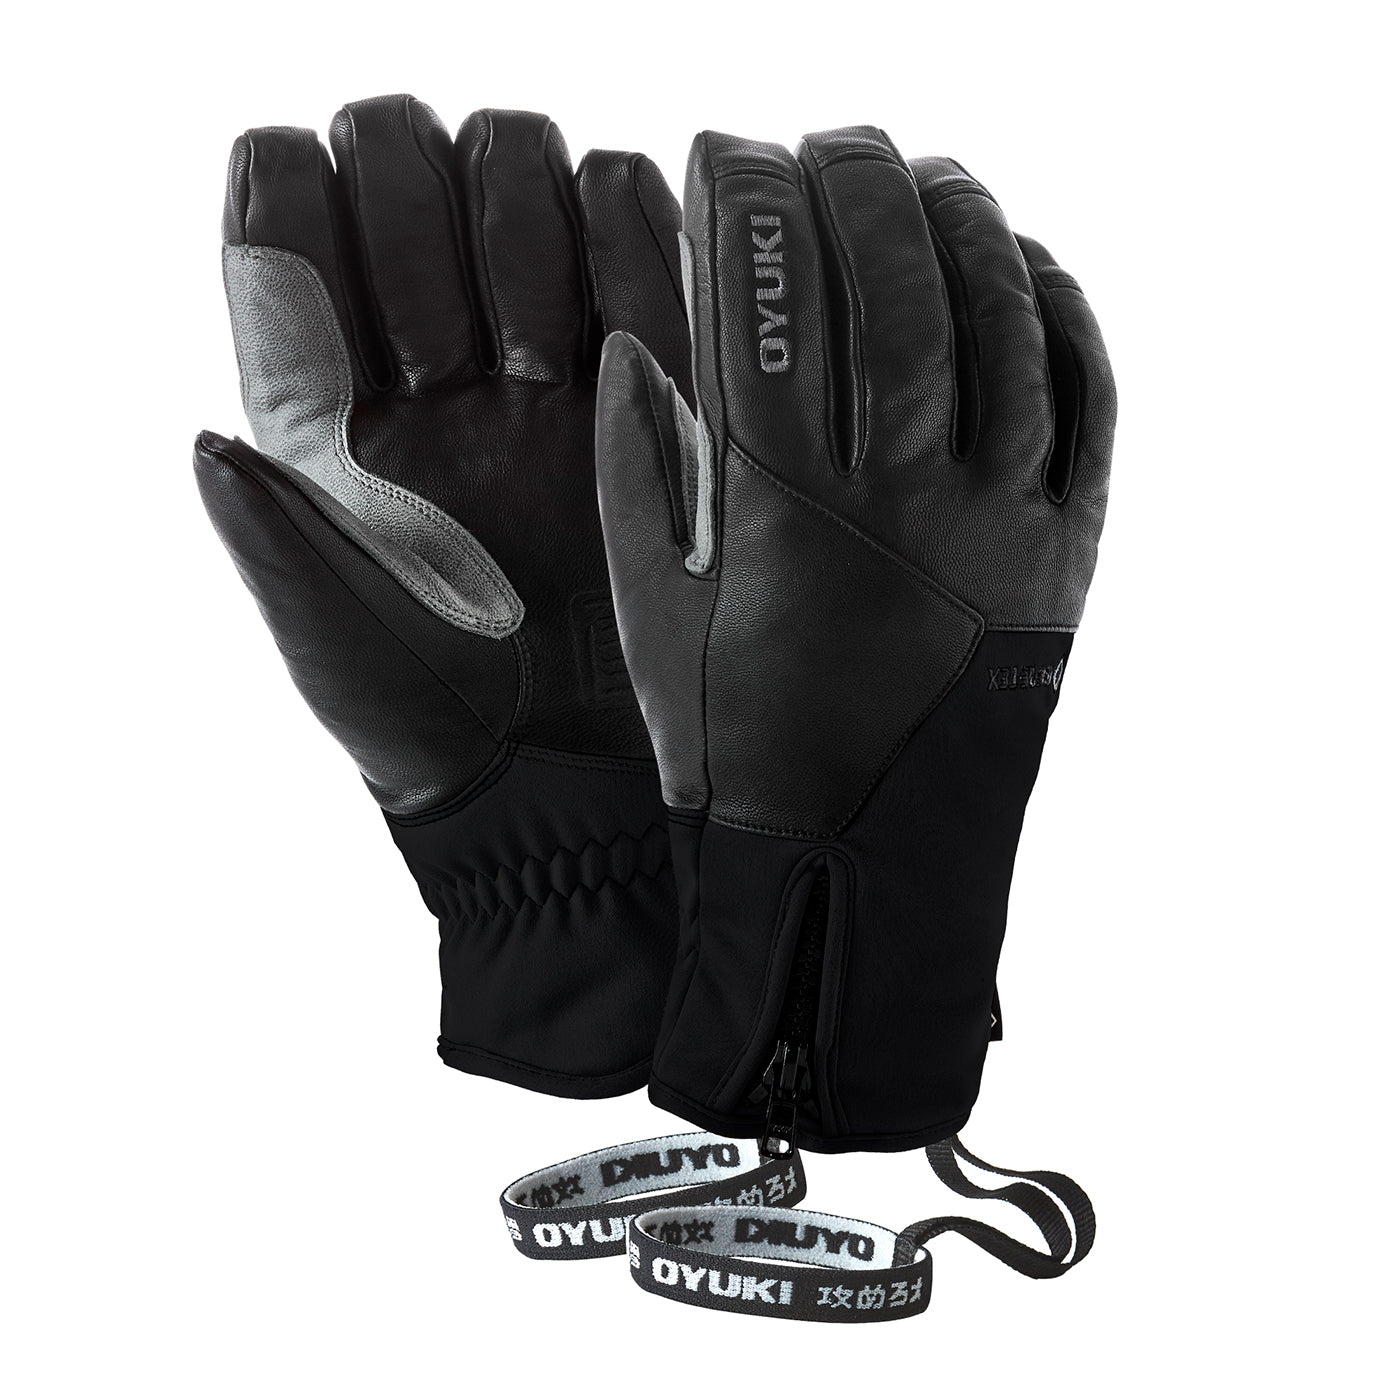 Oyuki Tamashii GTX Glove | Black- Shop Skis and snow gear online nz - snowscene